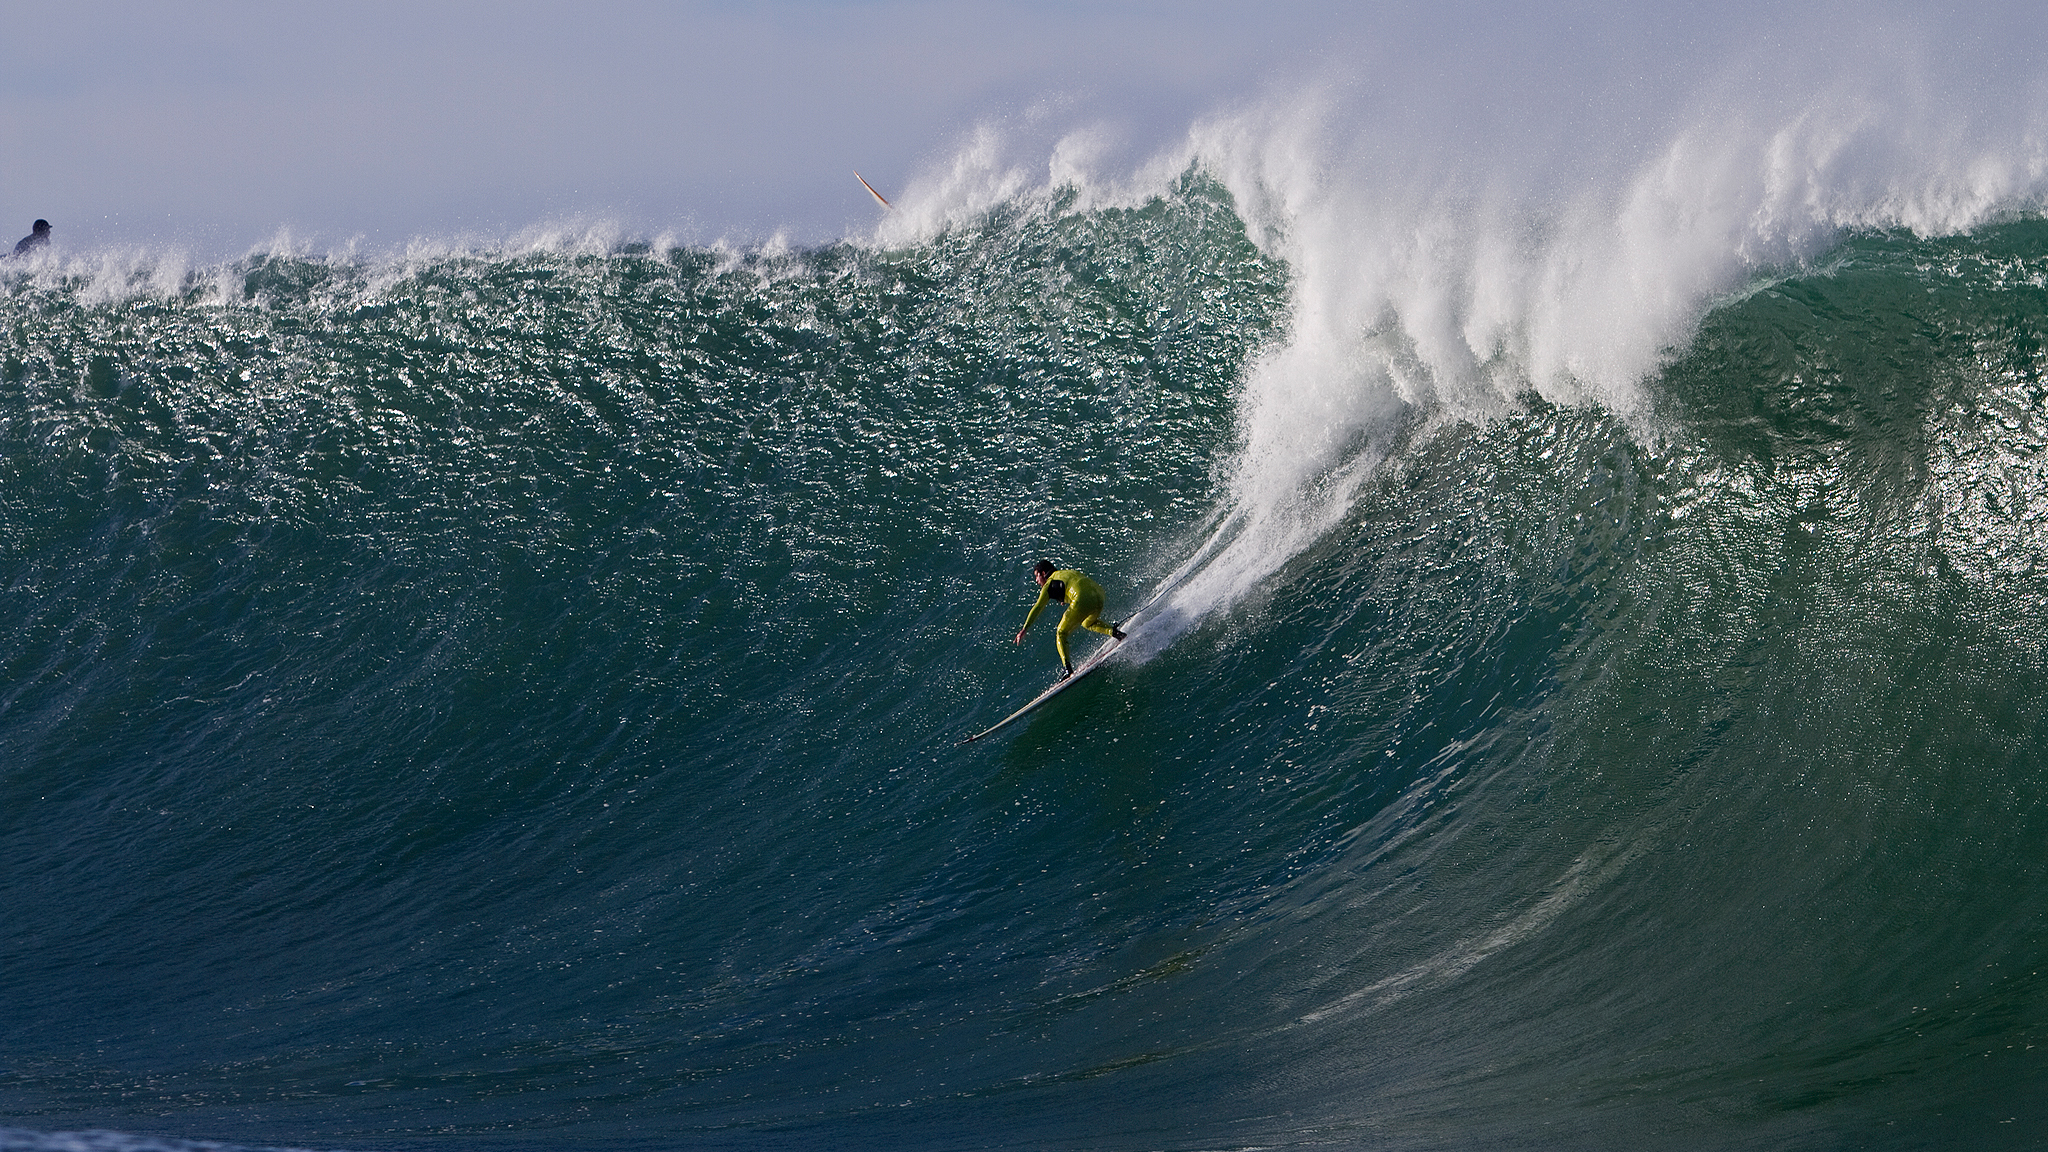 Peter Mel On Surfing For Hollywood Making Chasing